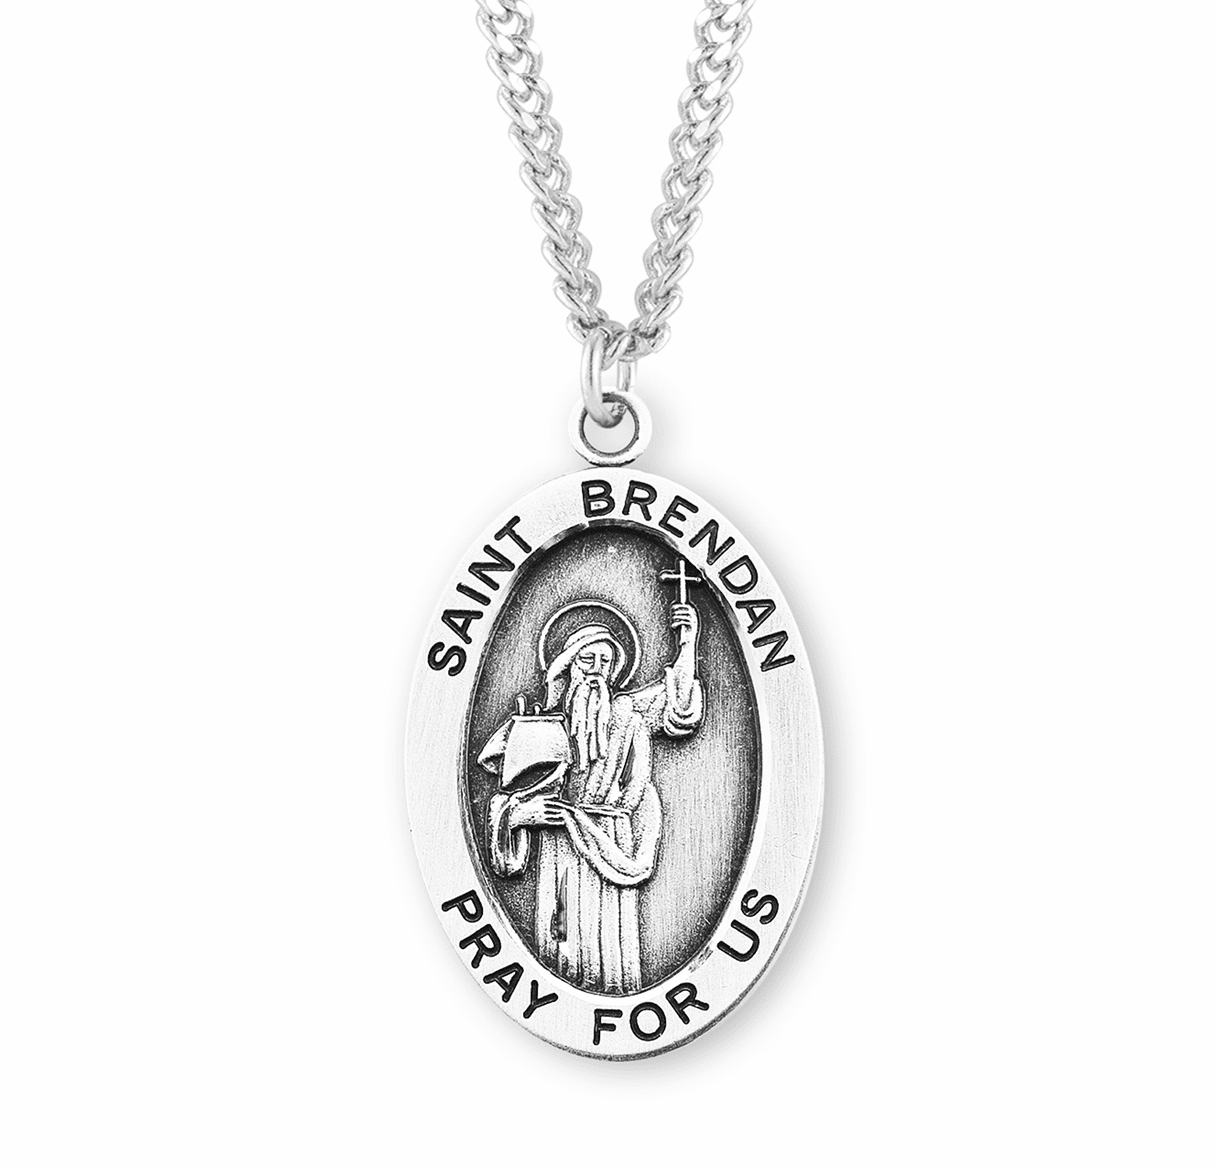 St Brendan Large Oval Sterling Silver Medals by HMH Religious